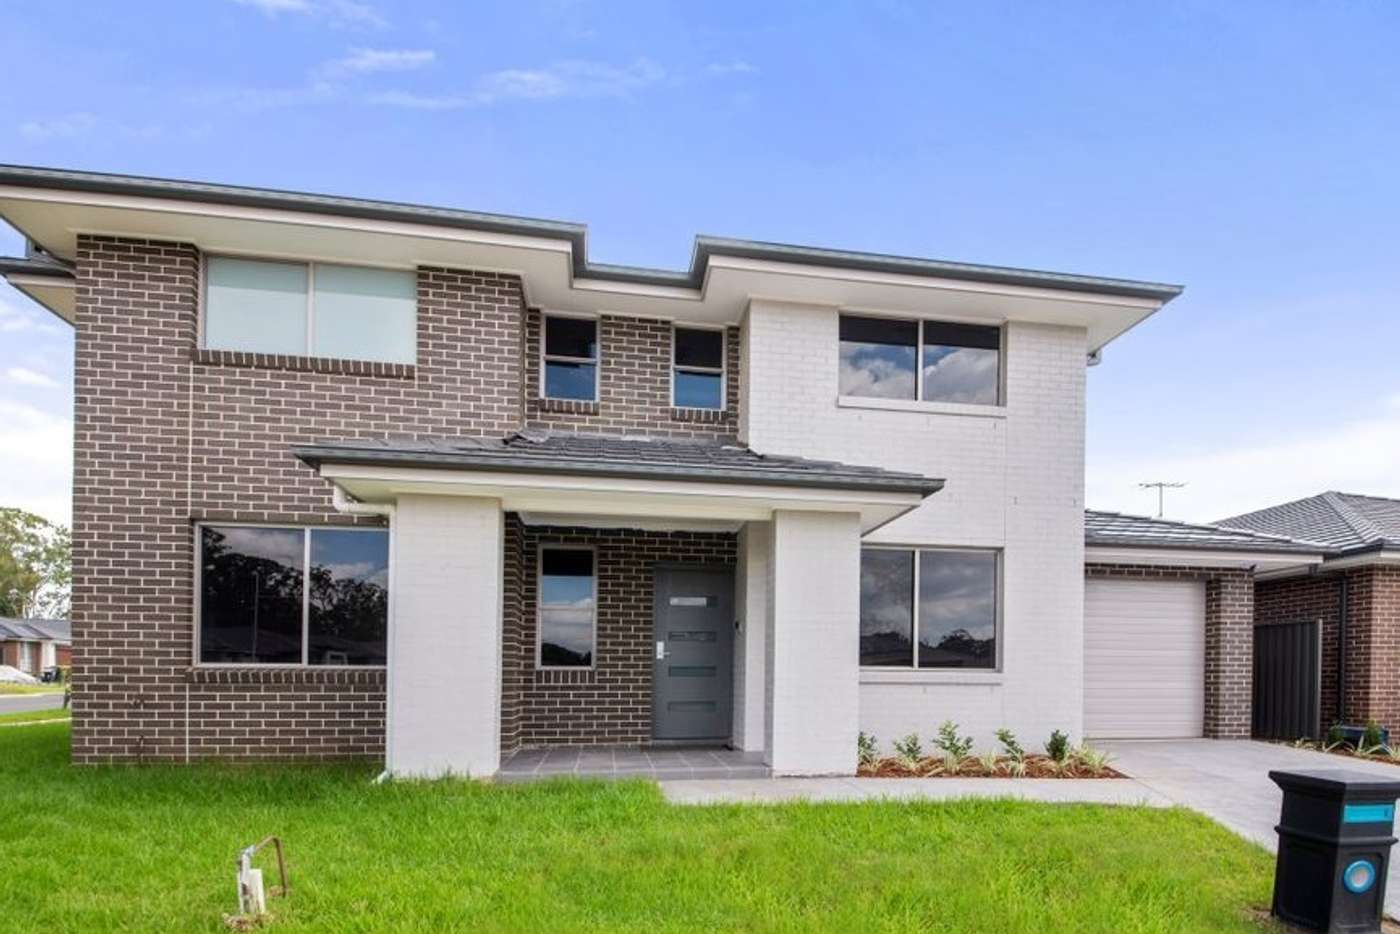 Main view of Homely house listing, 26 Smokebush Ave, Leppington NSW 2179